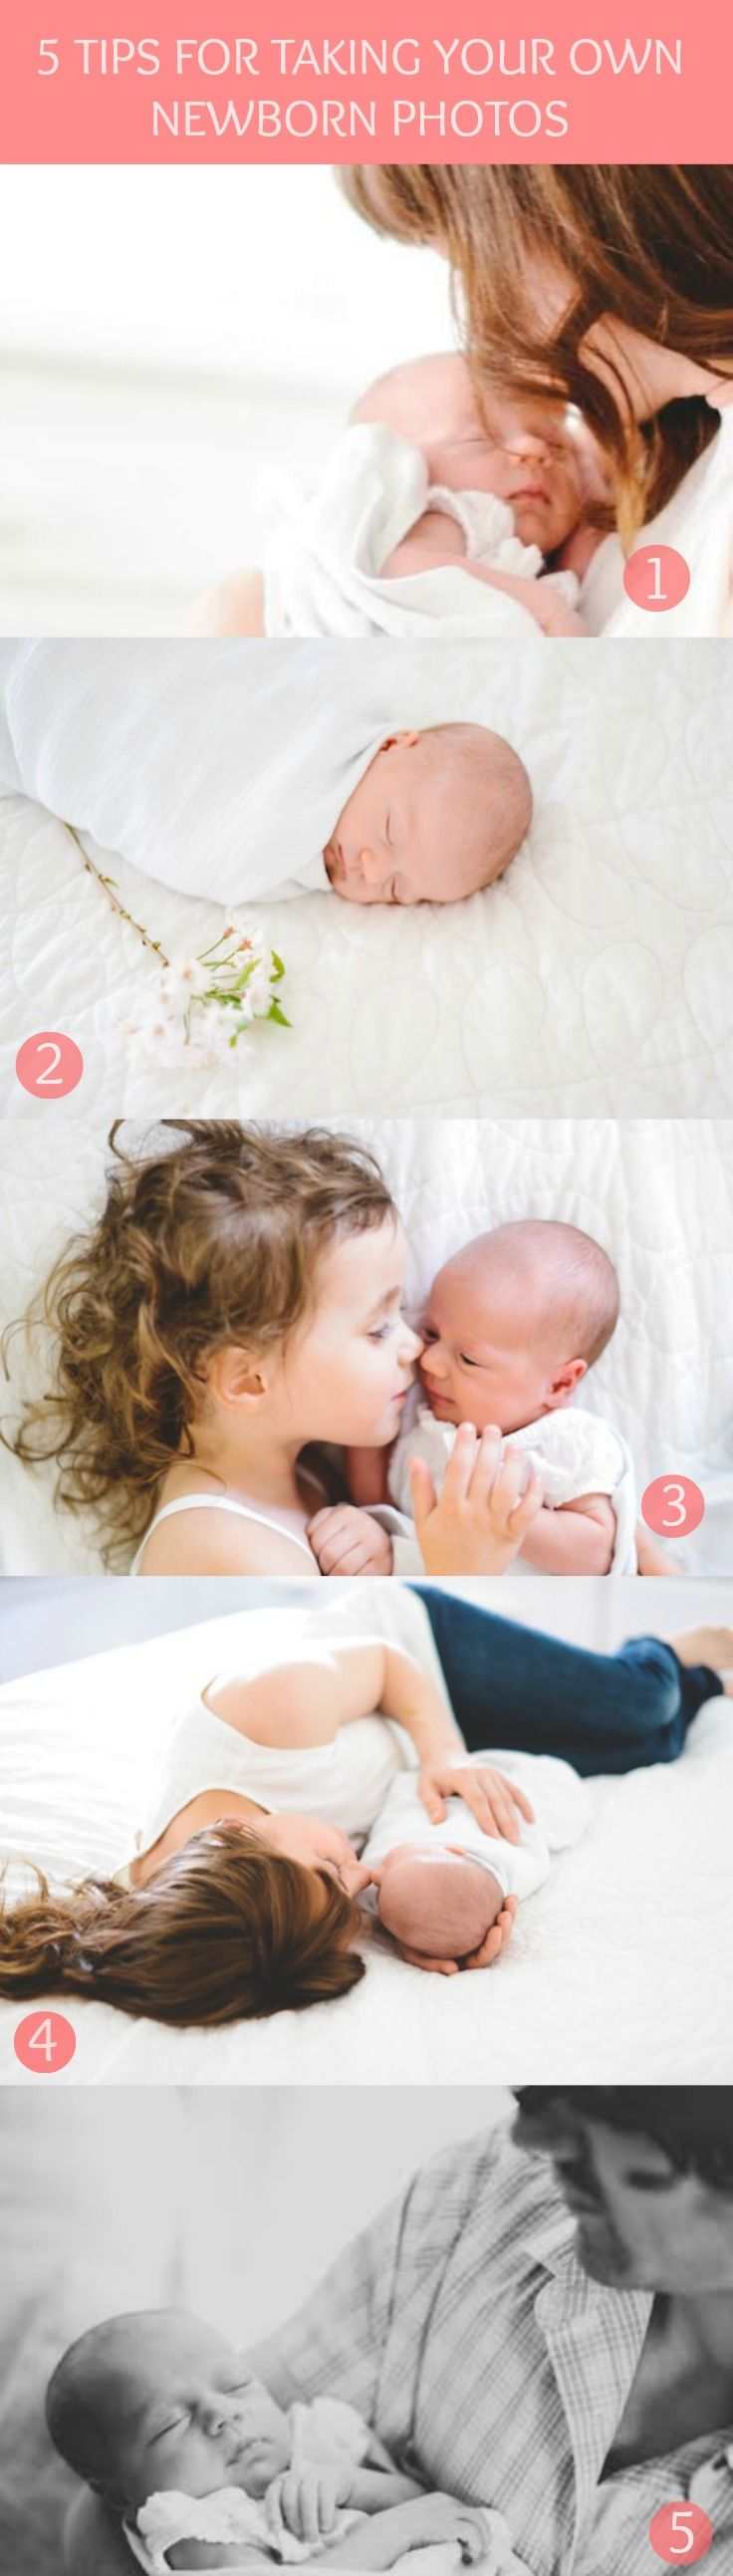 5 Tips for Taking Your Own Newborn Photos